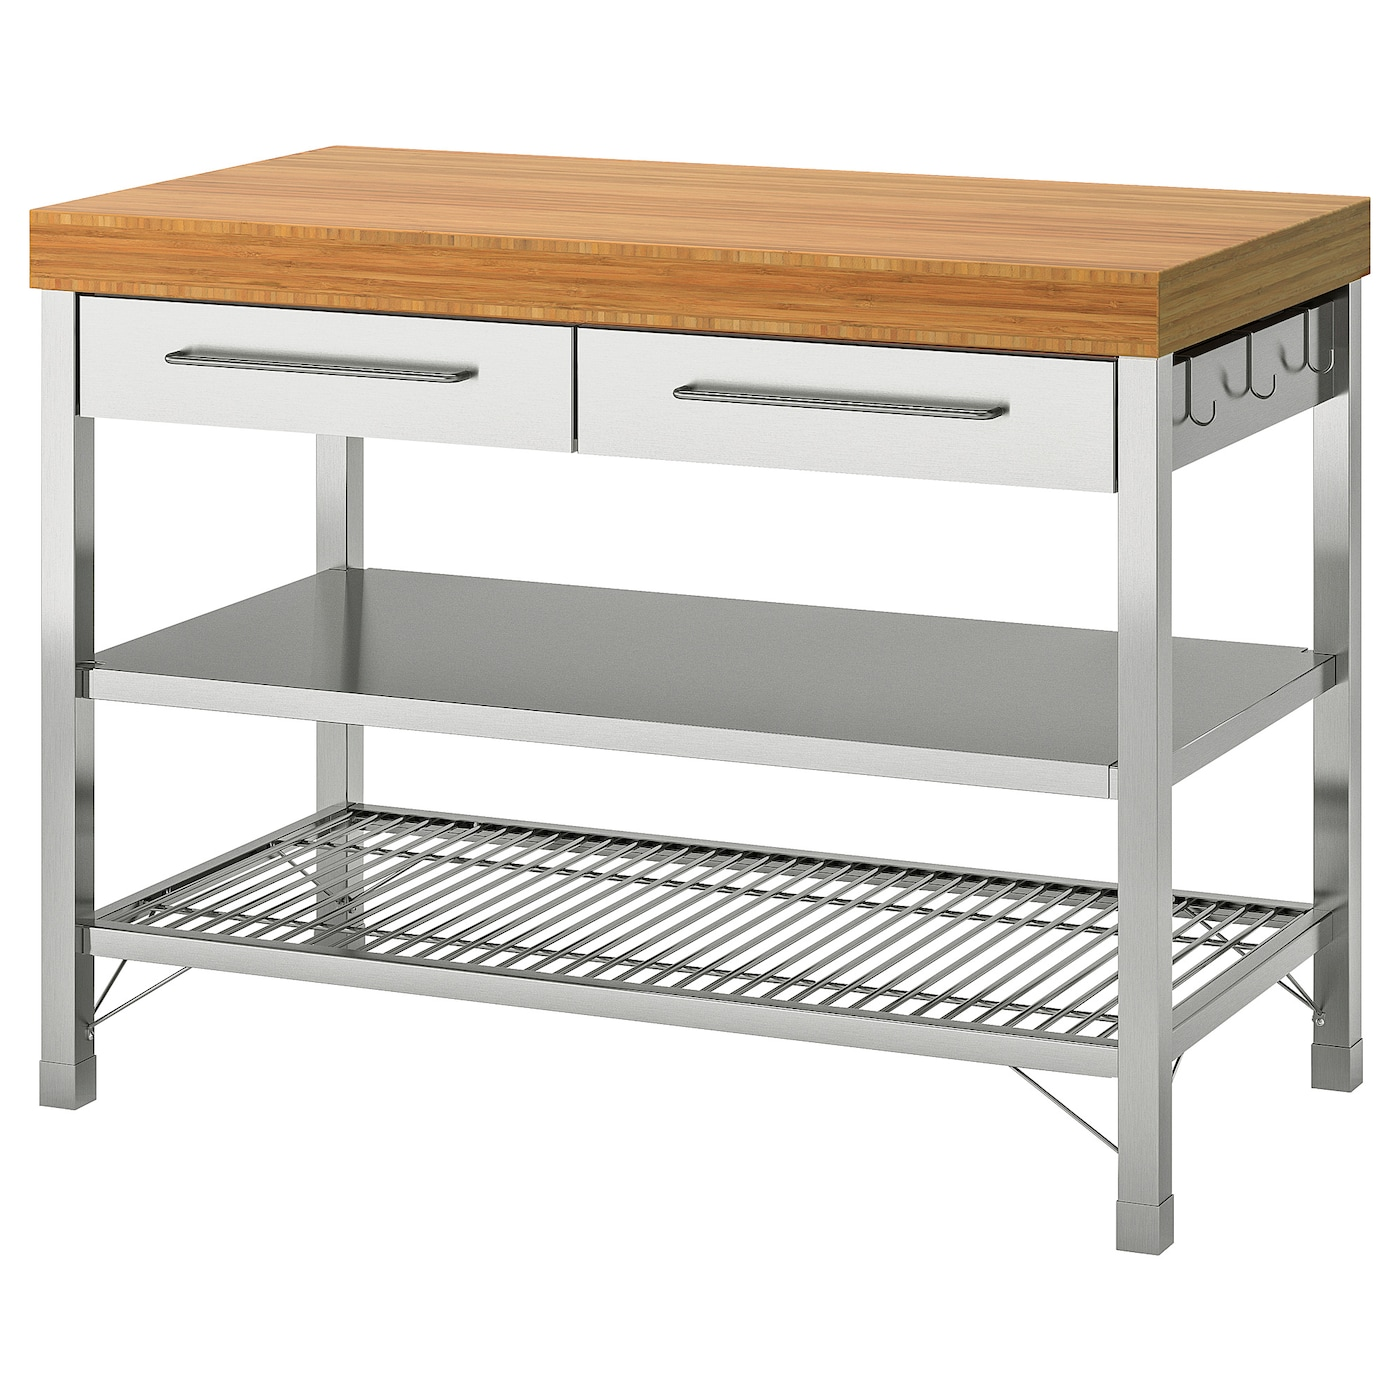 RIMFORSA Work bench - stainless steel/bamboo 5x5.5x5 cm